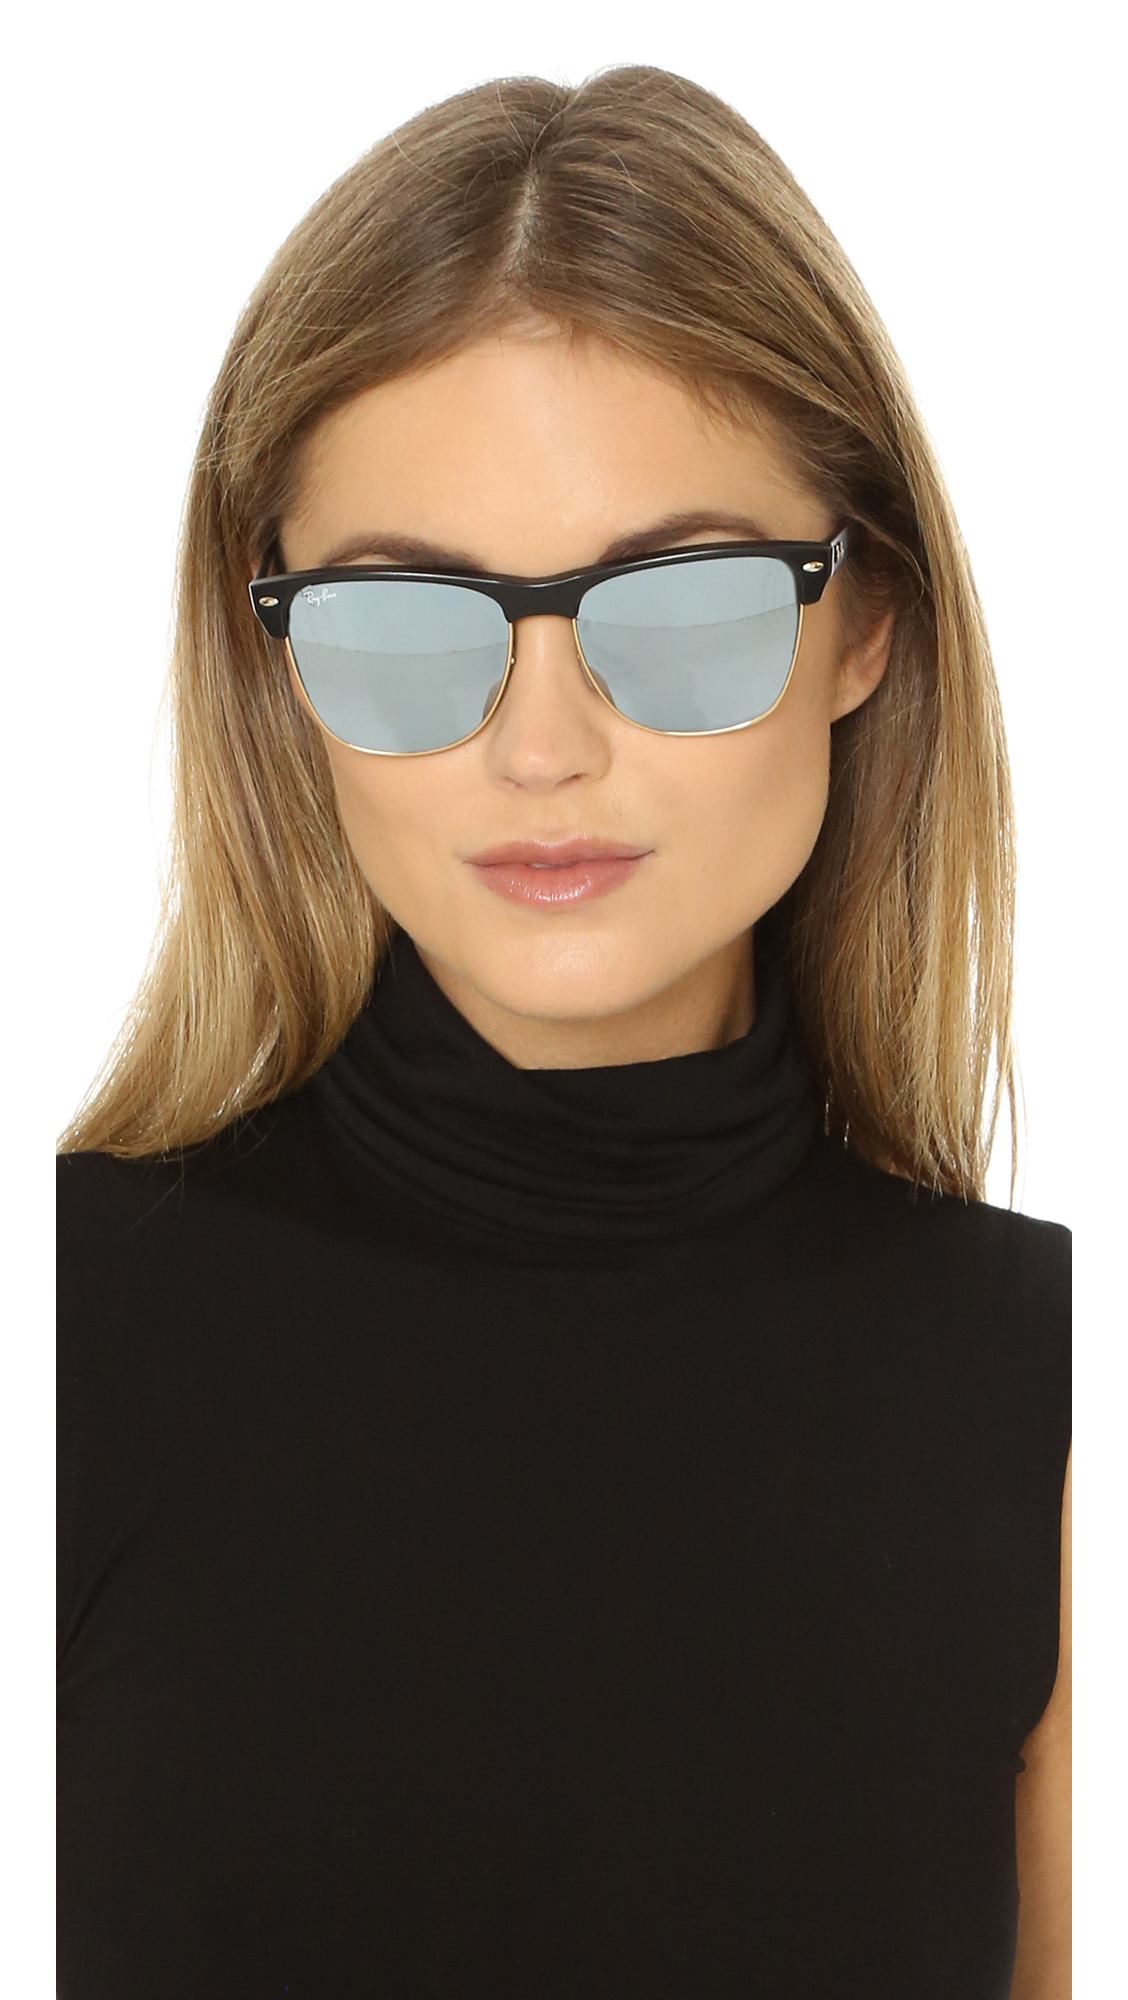 ray ban clubmaster sunglasses oversized  gallery. previously sold at: shopbop · women's clubmaster sunglasses women's ray ban